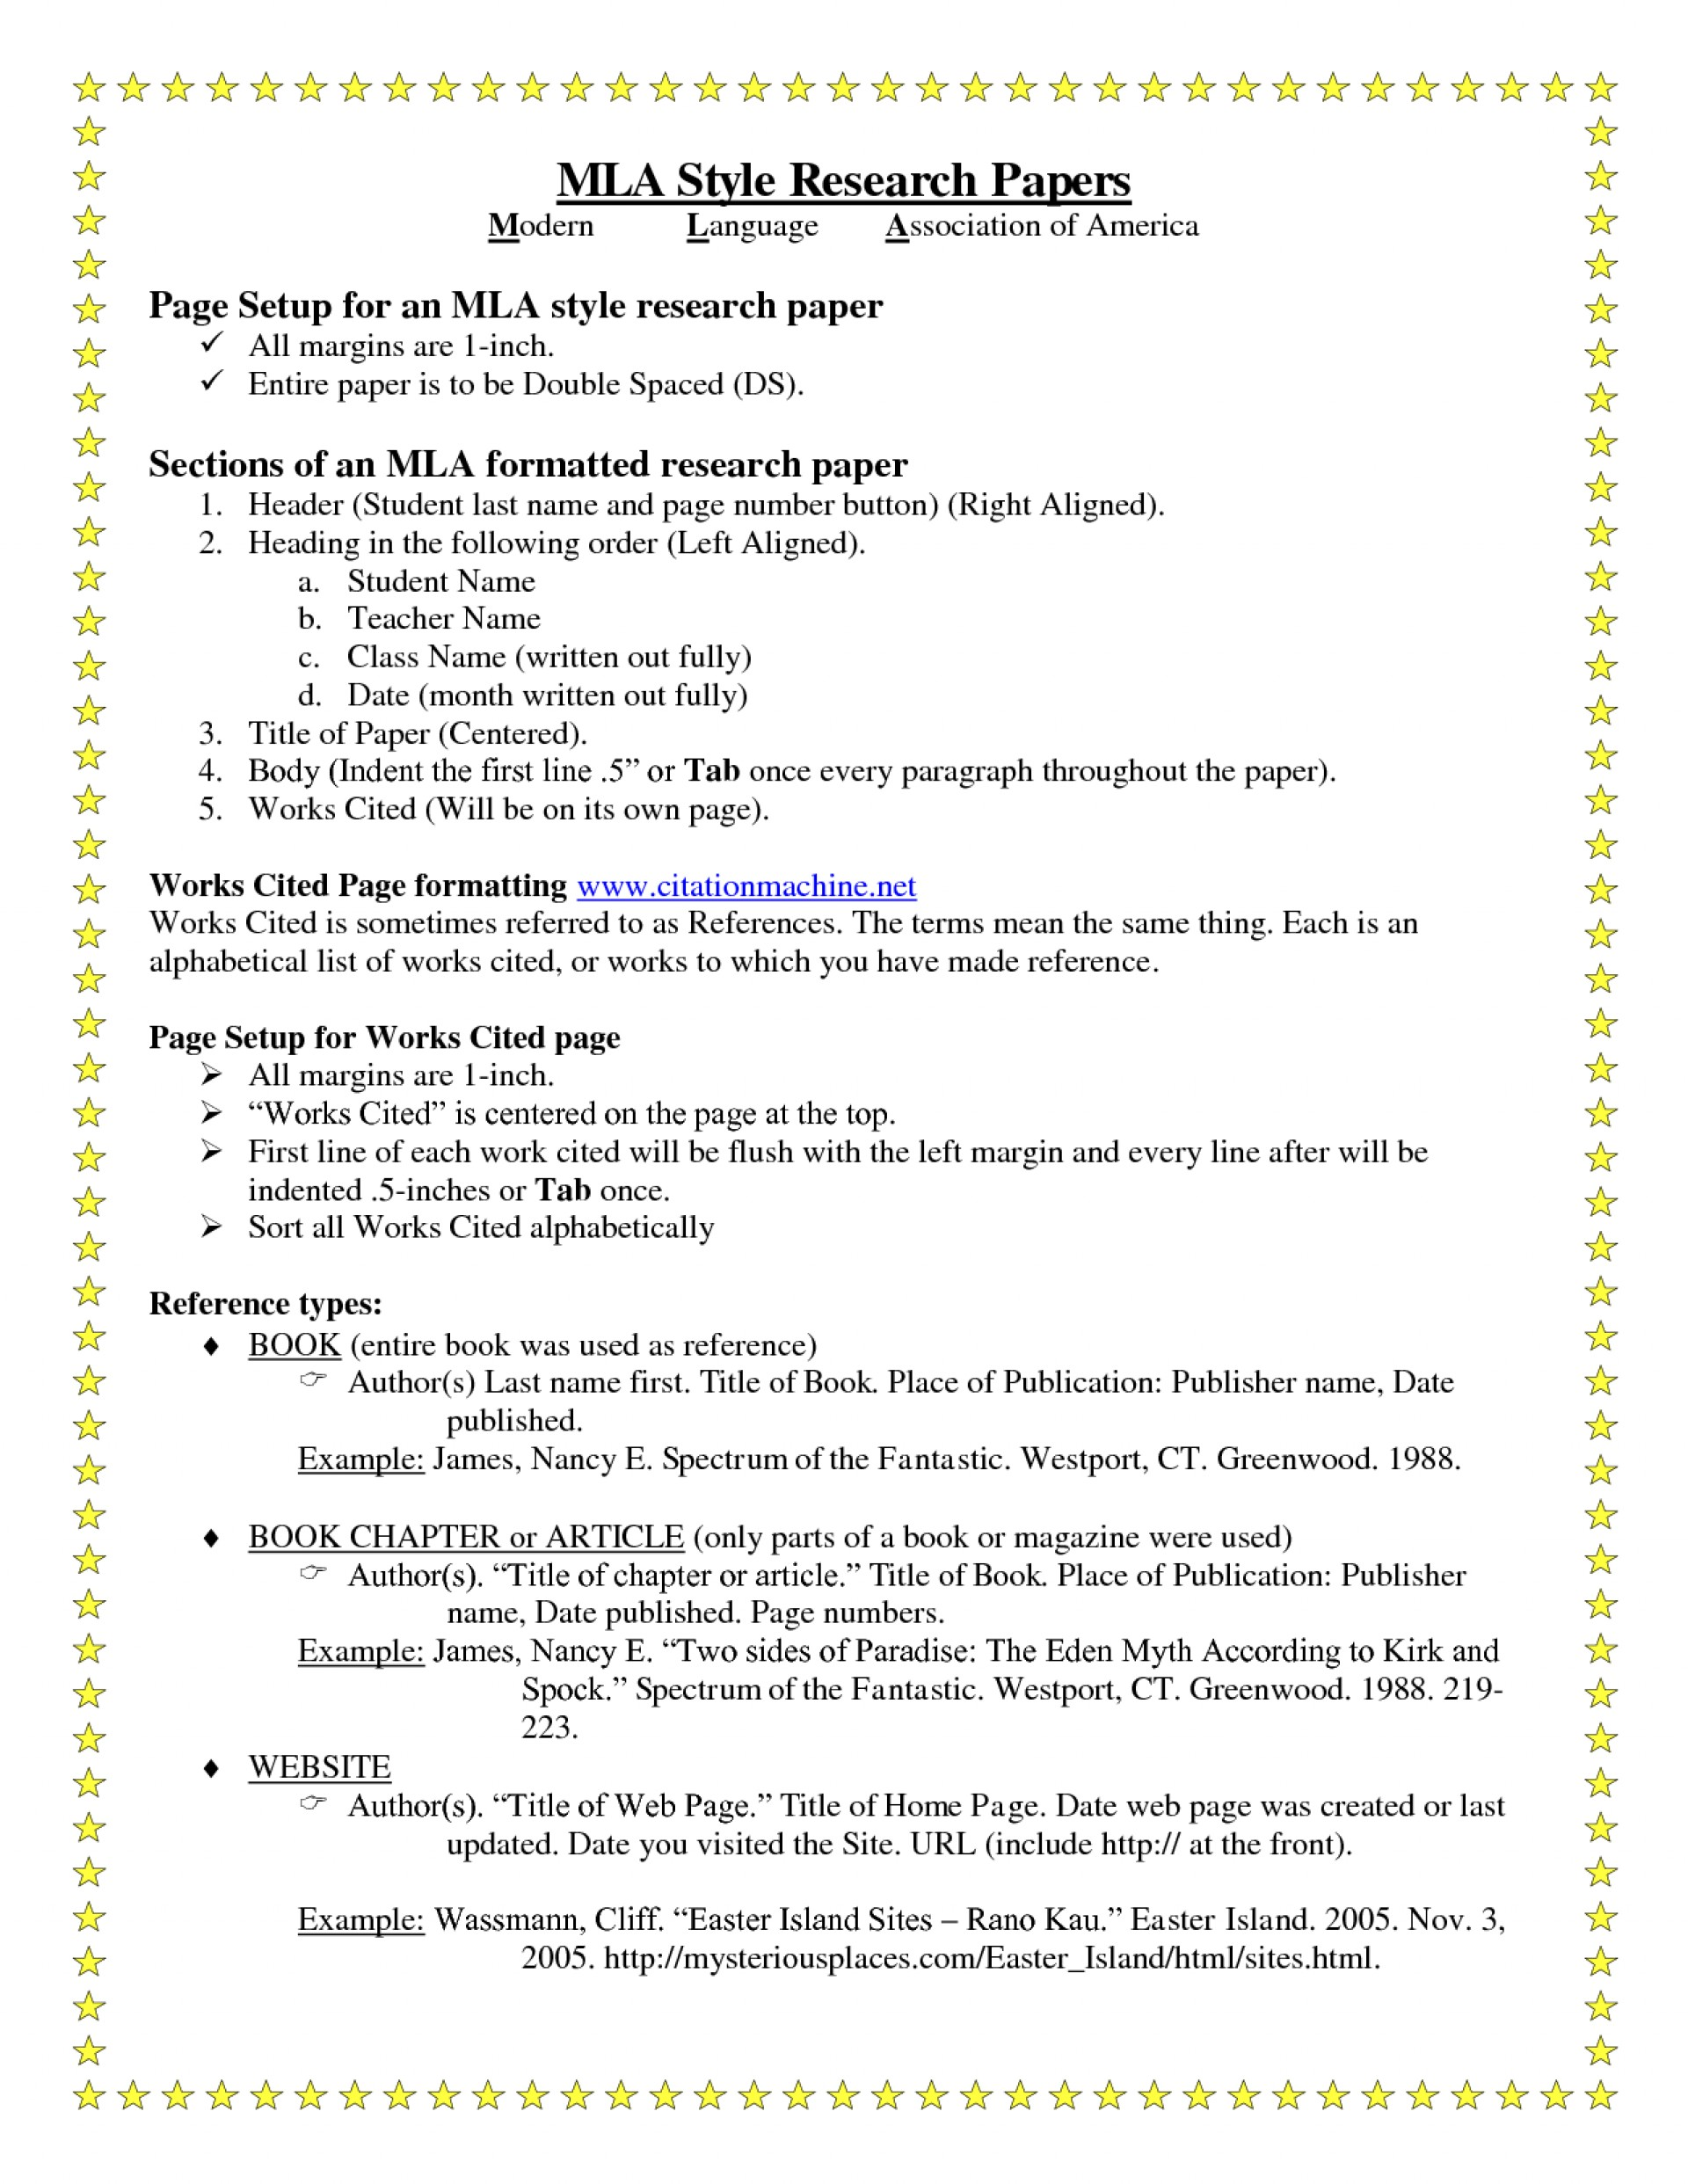 002 Order Ofs In Research Paper Frightening Heading Apa Headings Example Mla 1920